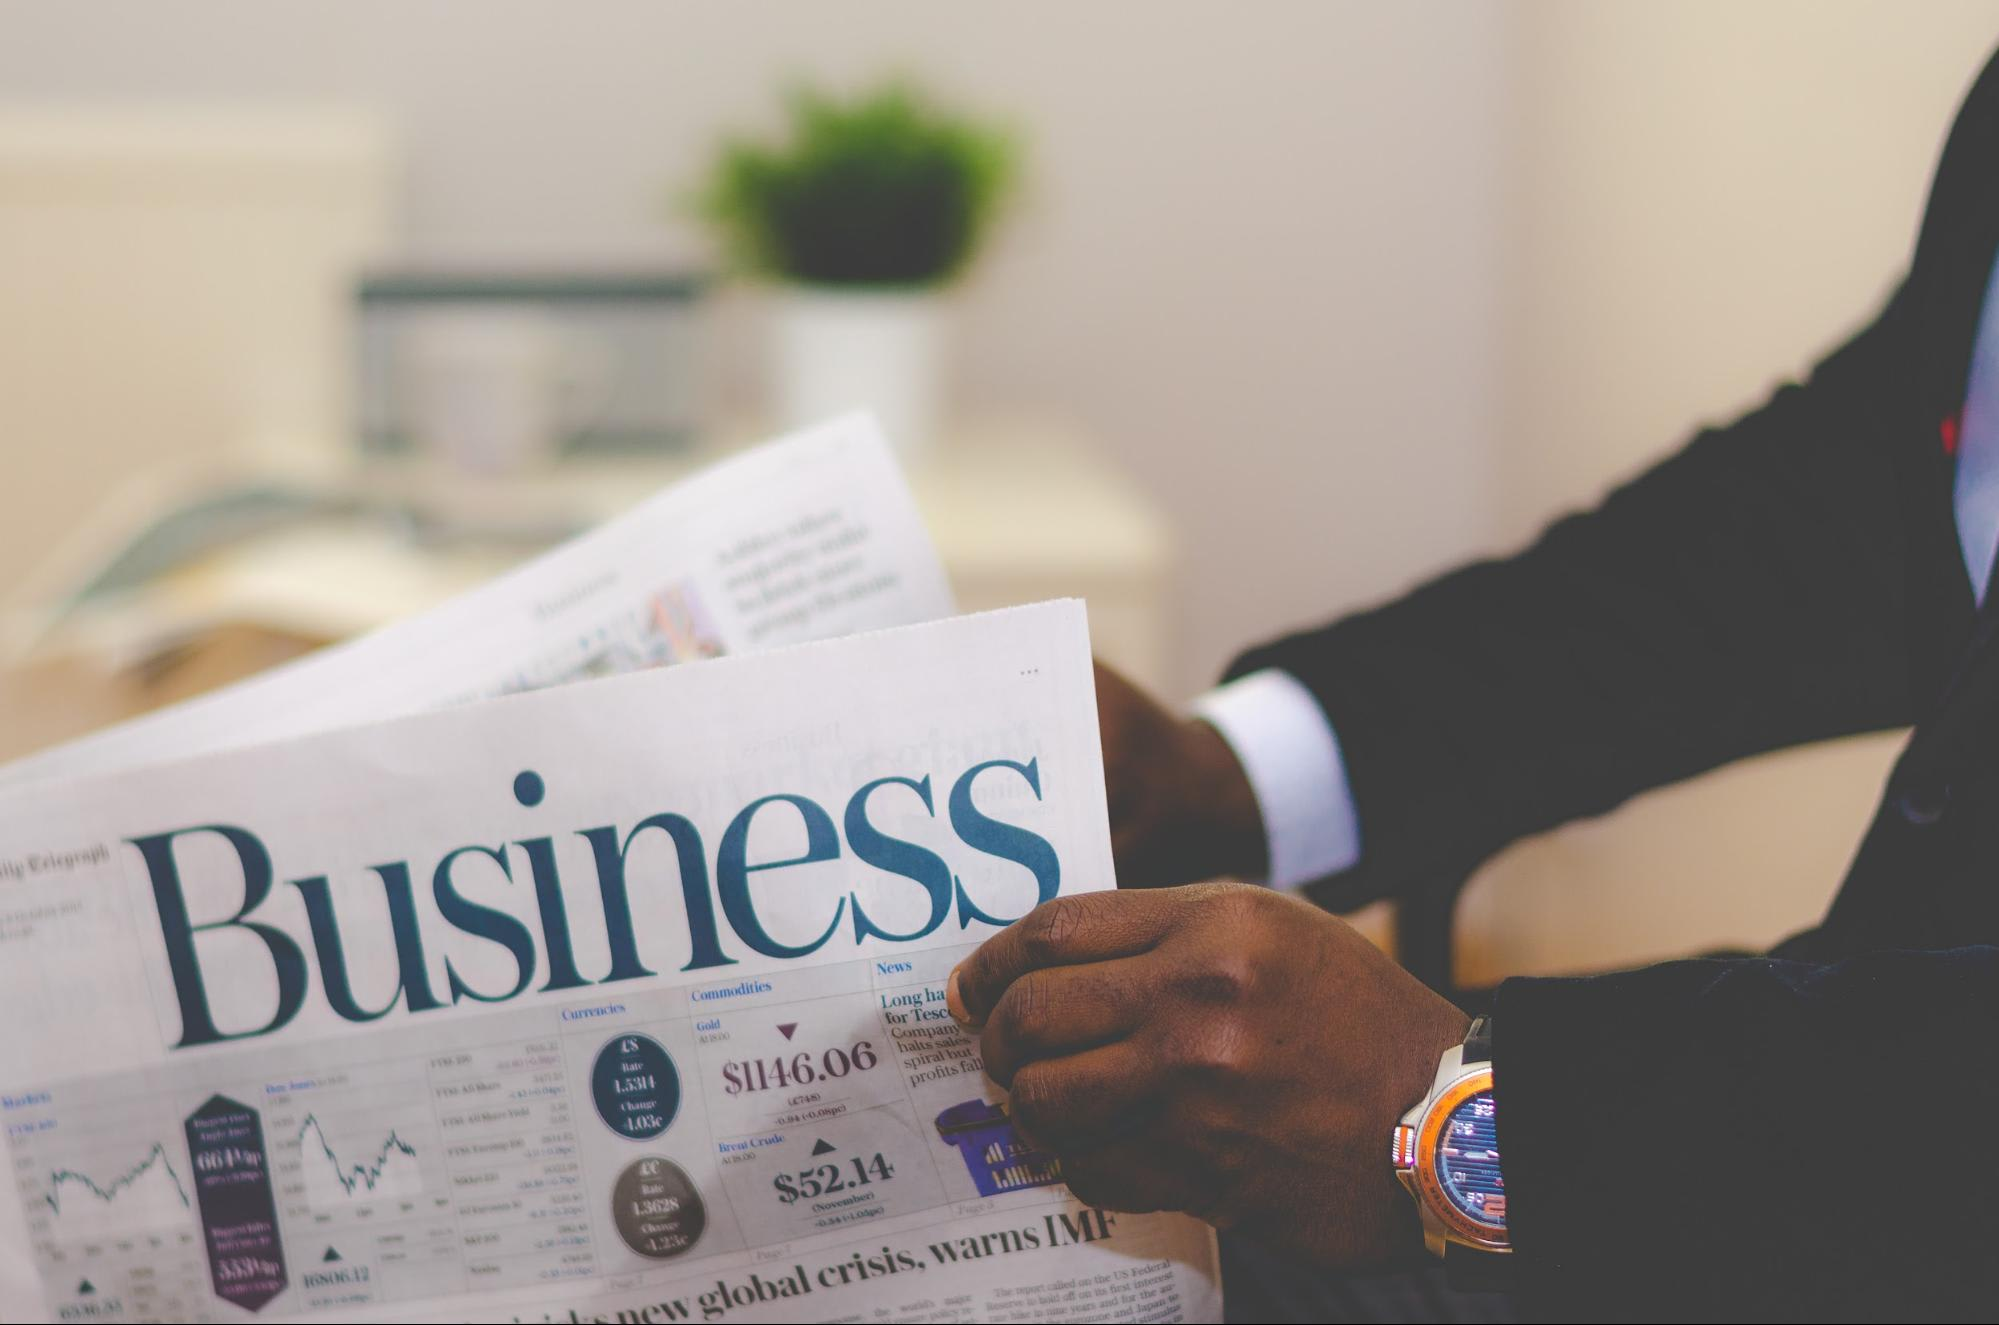 Phone close up of hands holding a business newspaper